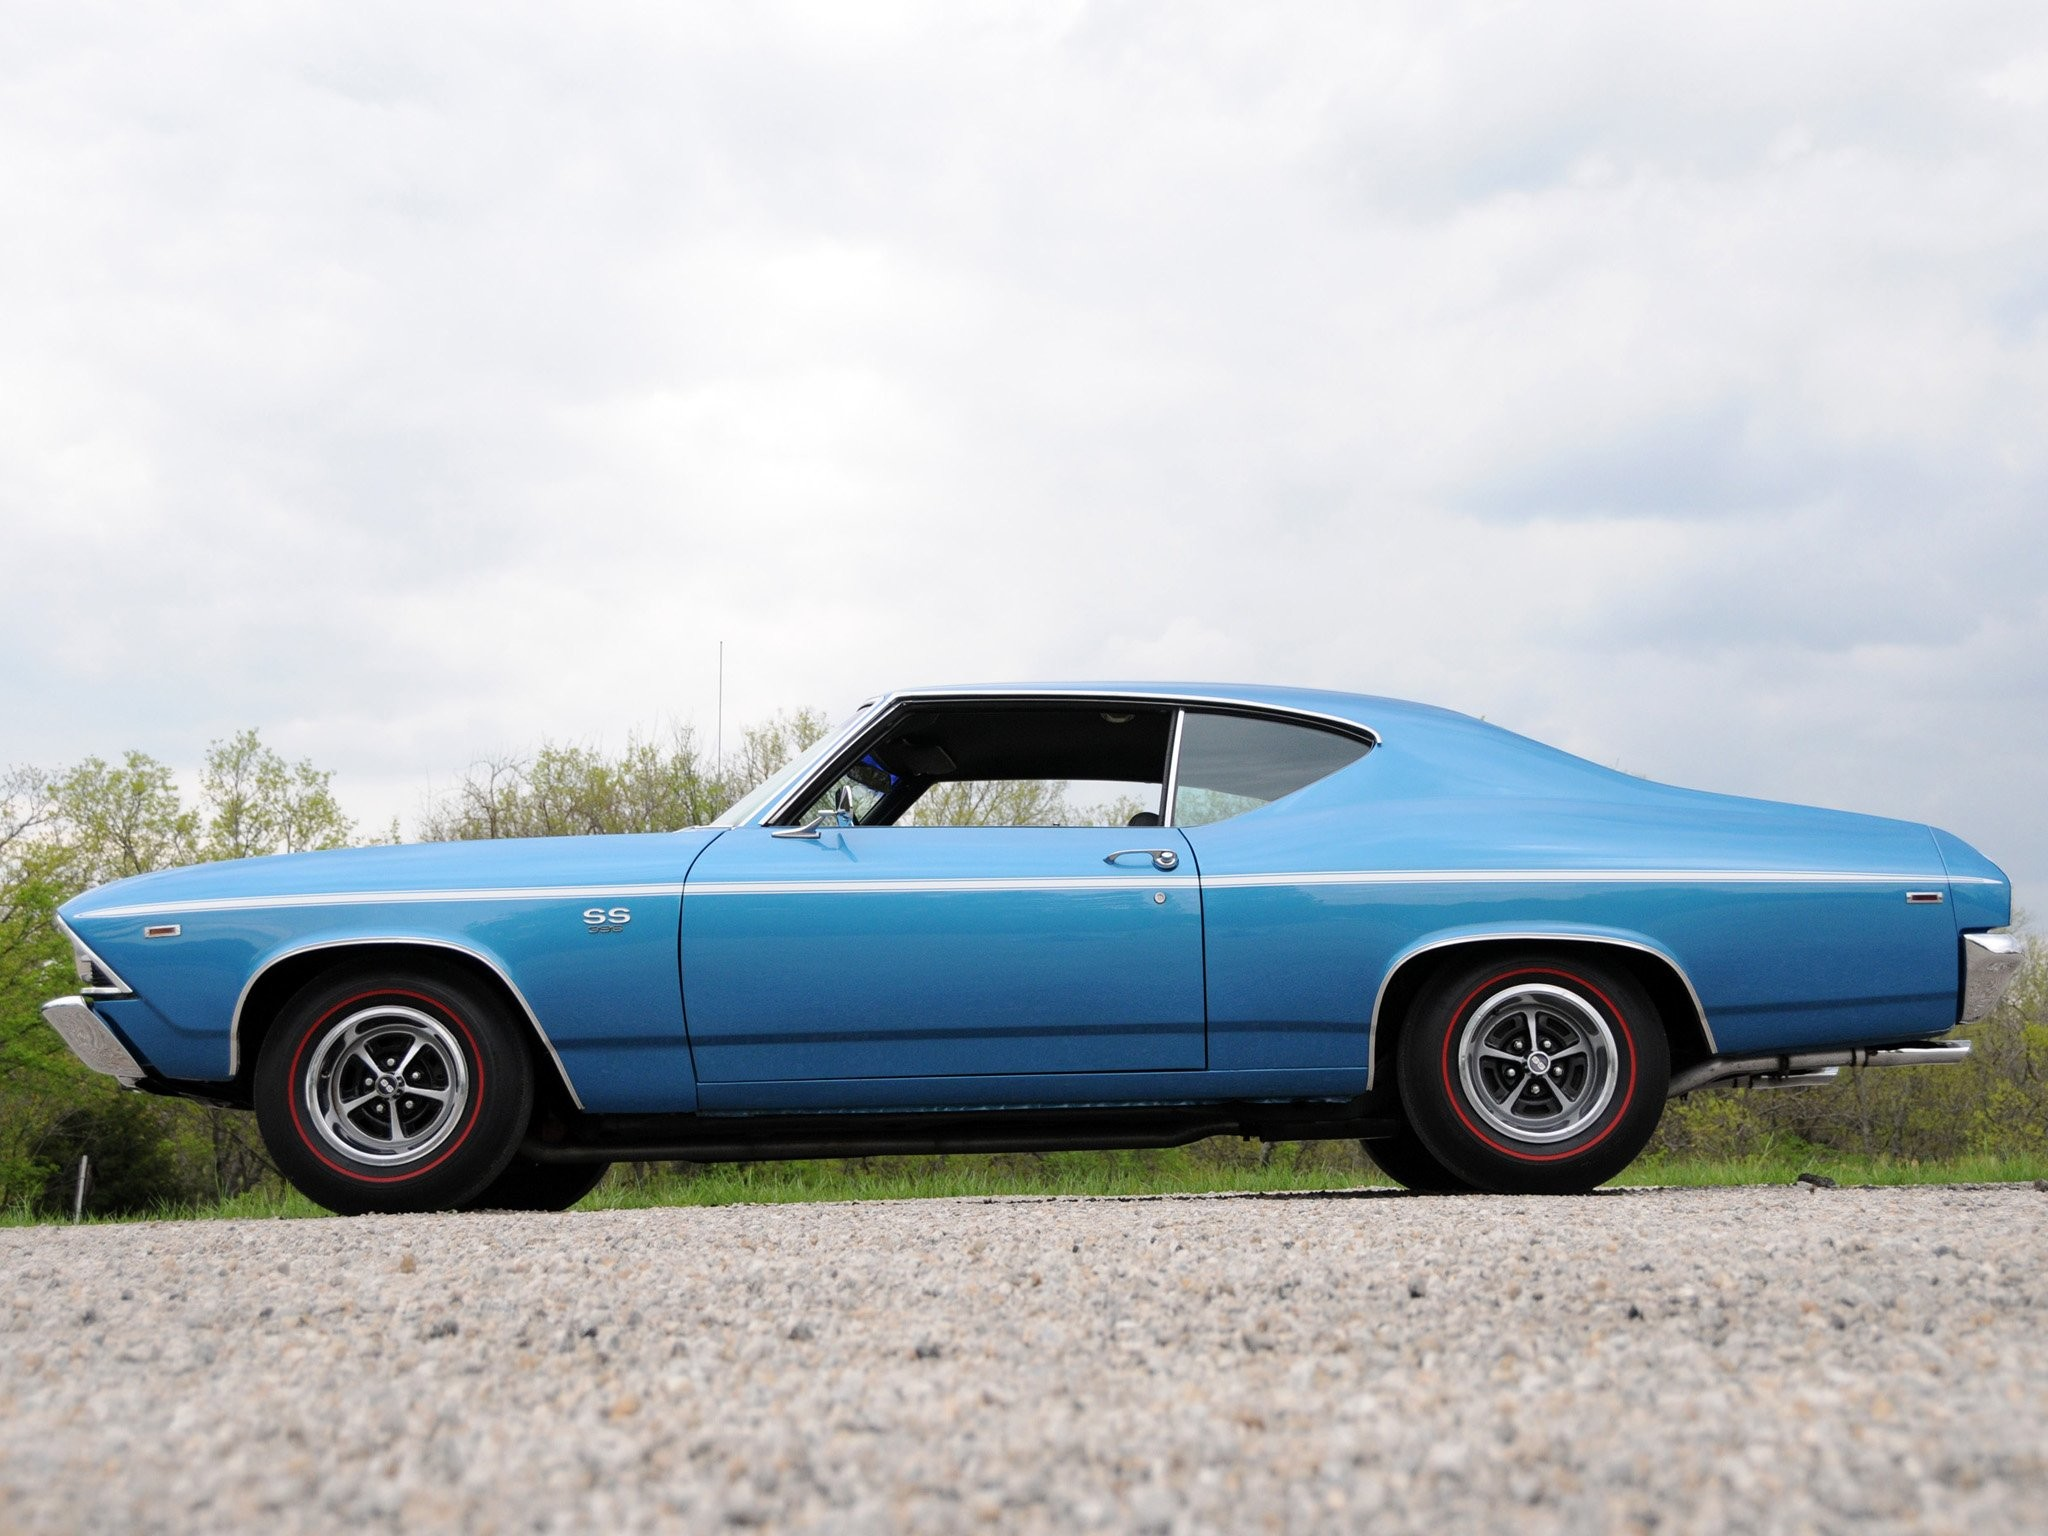 1969 Chevrolet Chevelle S-S 396 Hardtop Coupe muscle .